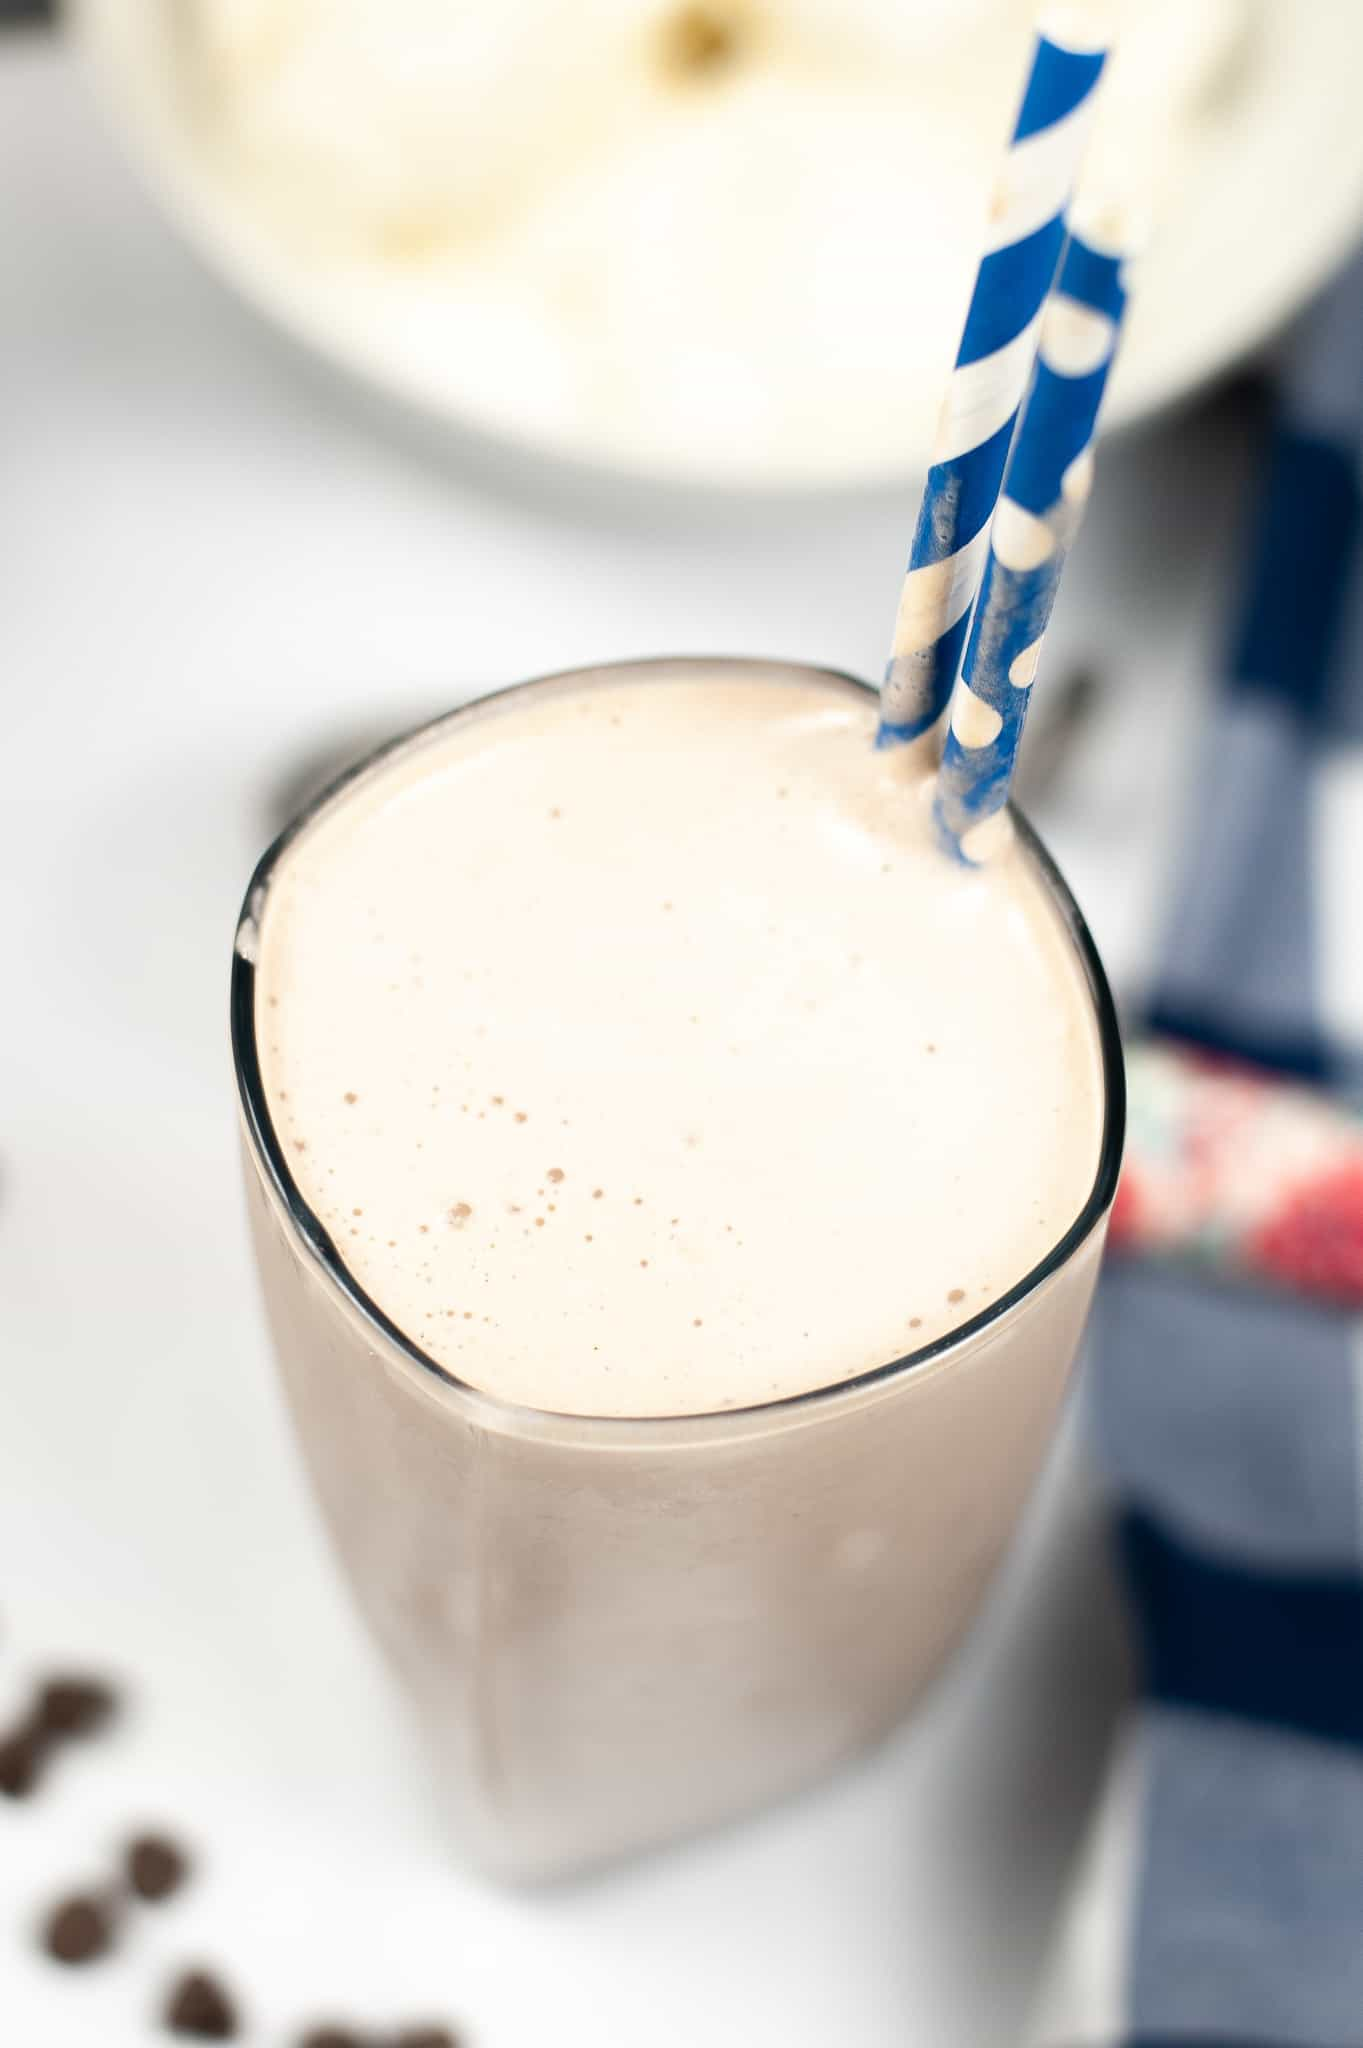 Top shot of a wendys frosty with two blue and white straws.